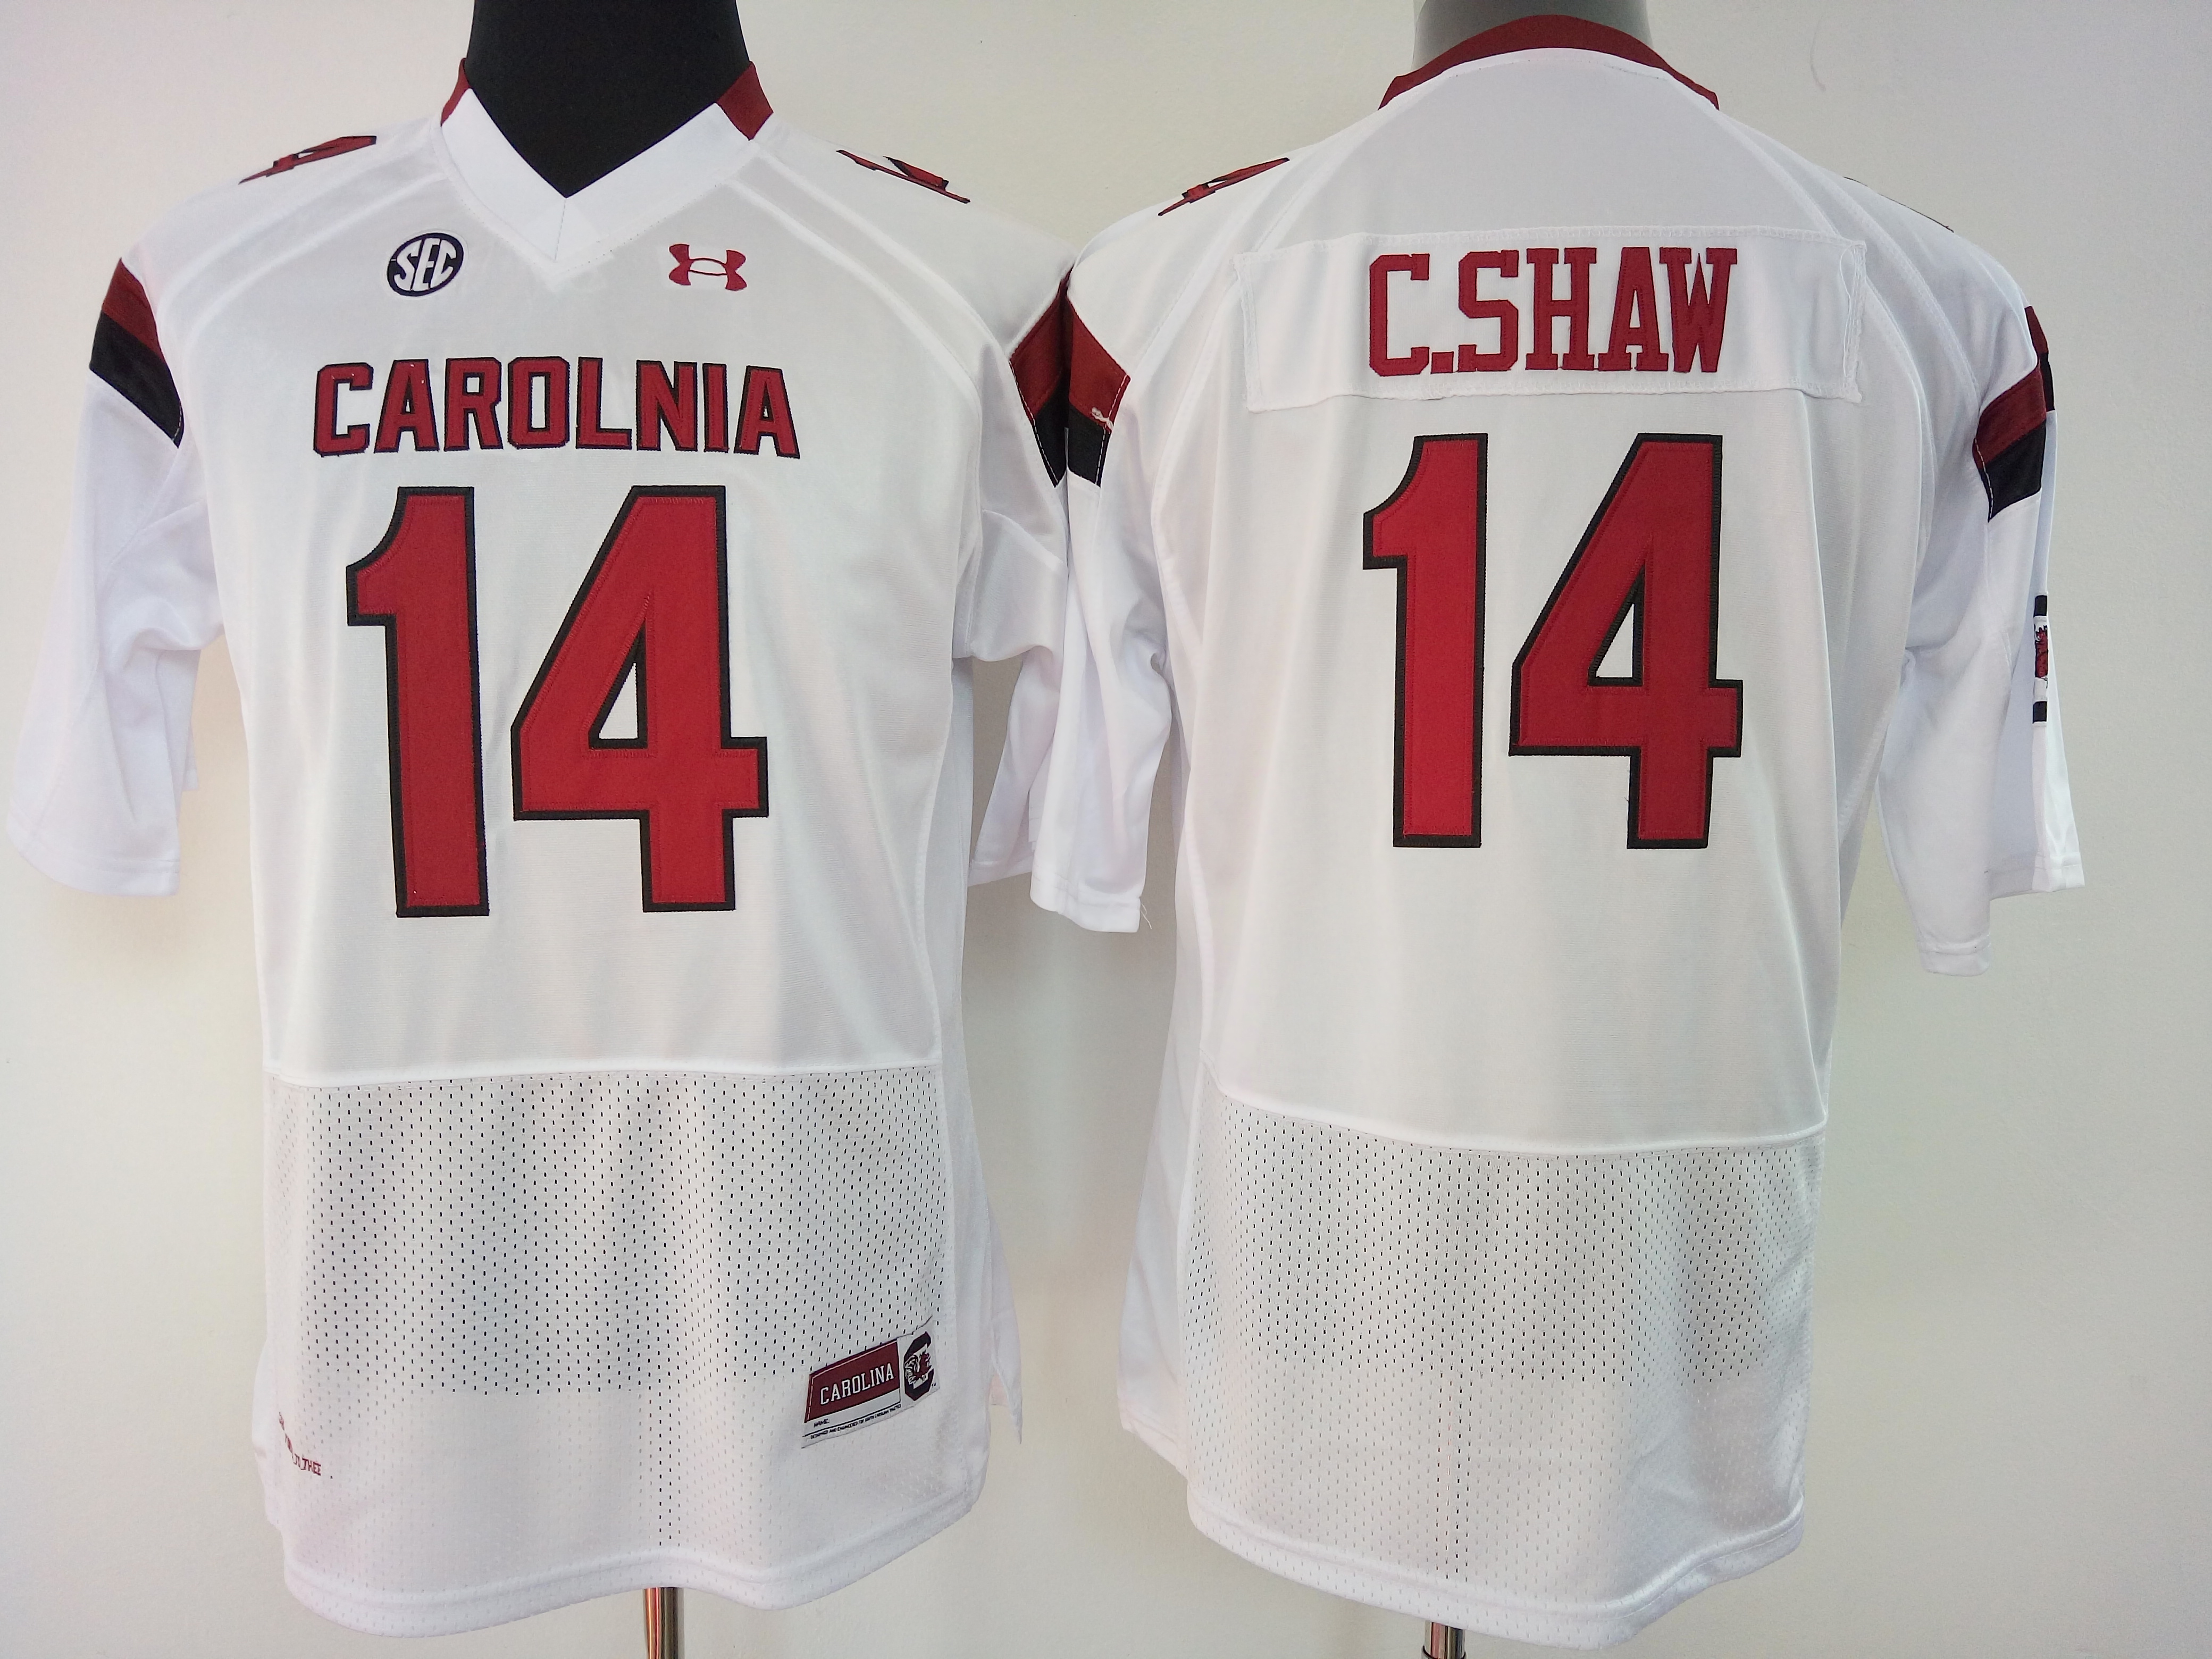 NCAA Womens South Carolina Gamecock White 14 c shaw jerseys